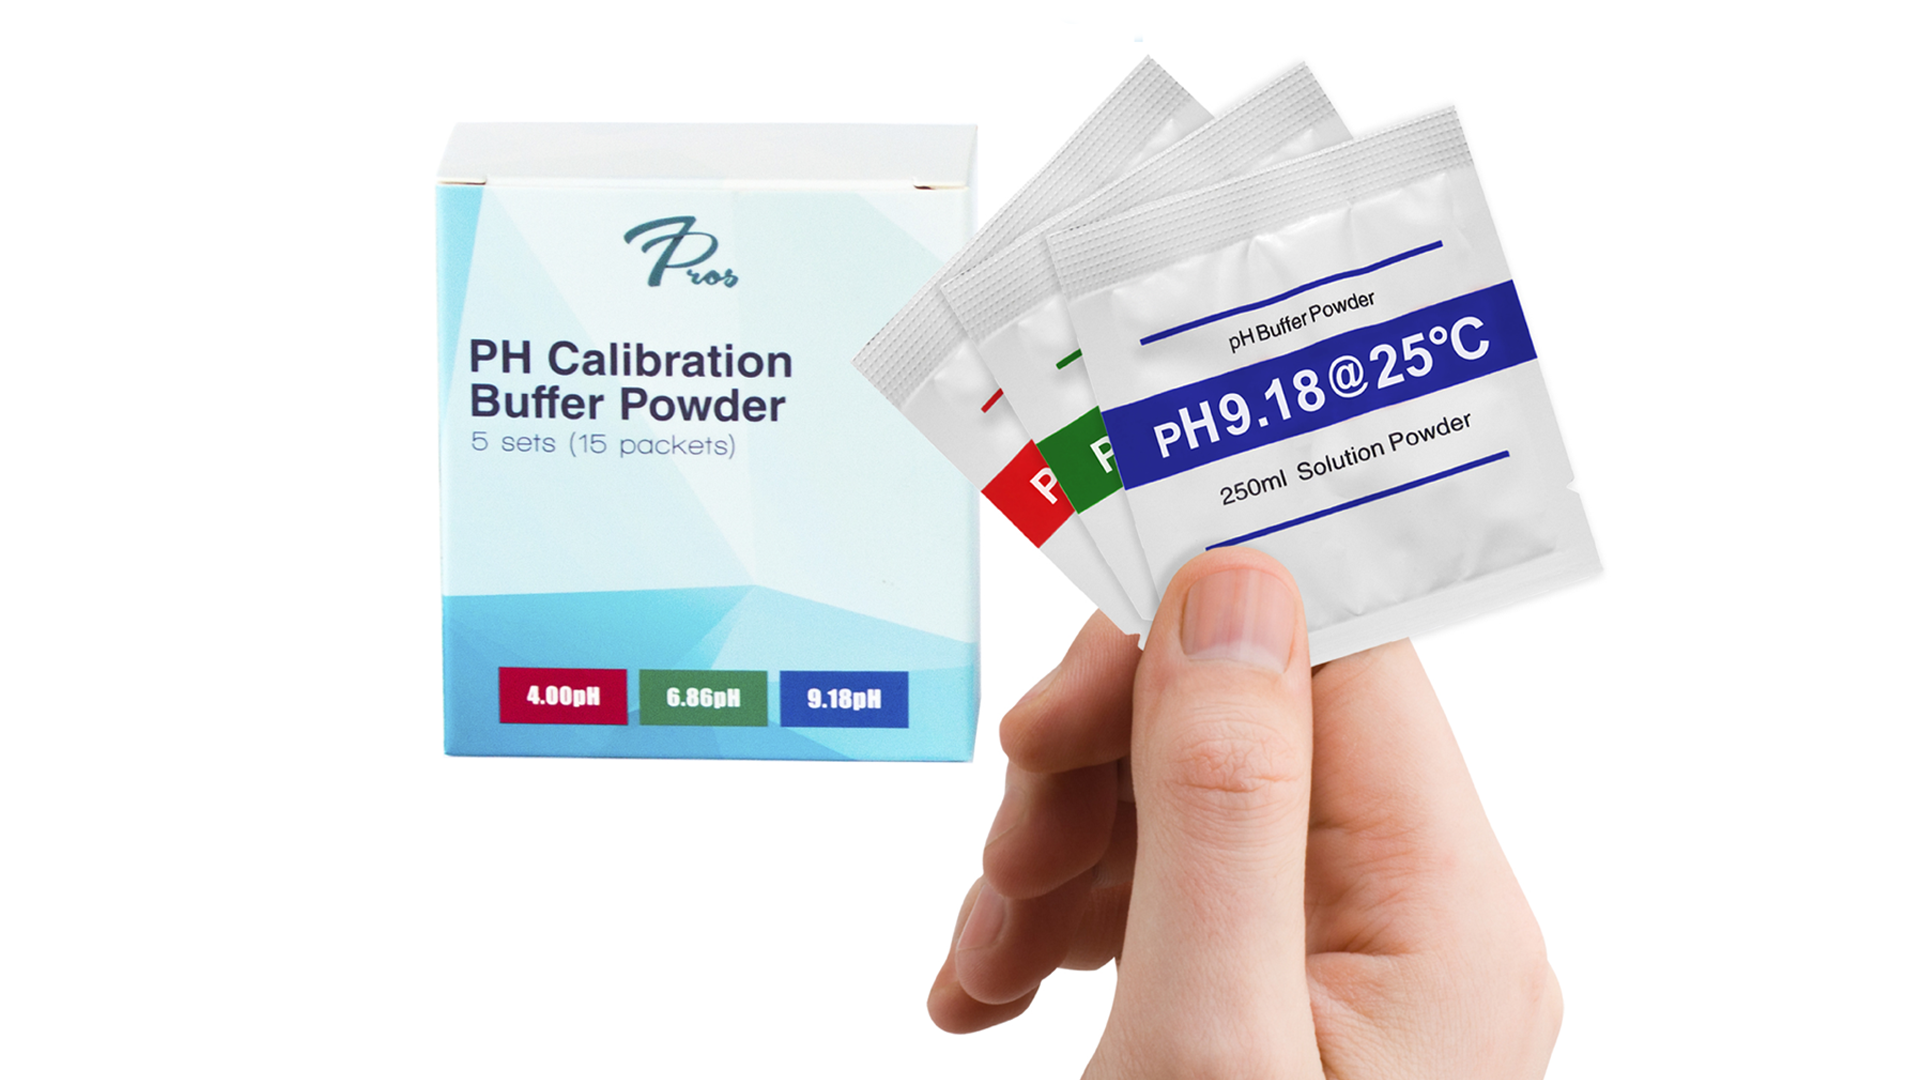 7Pros Calibration Buffer Powder